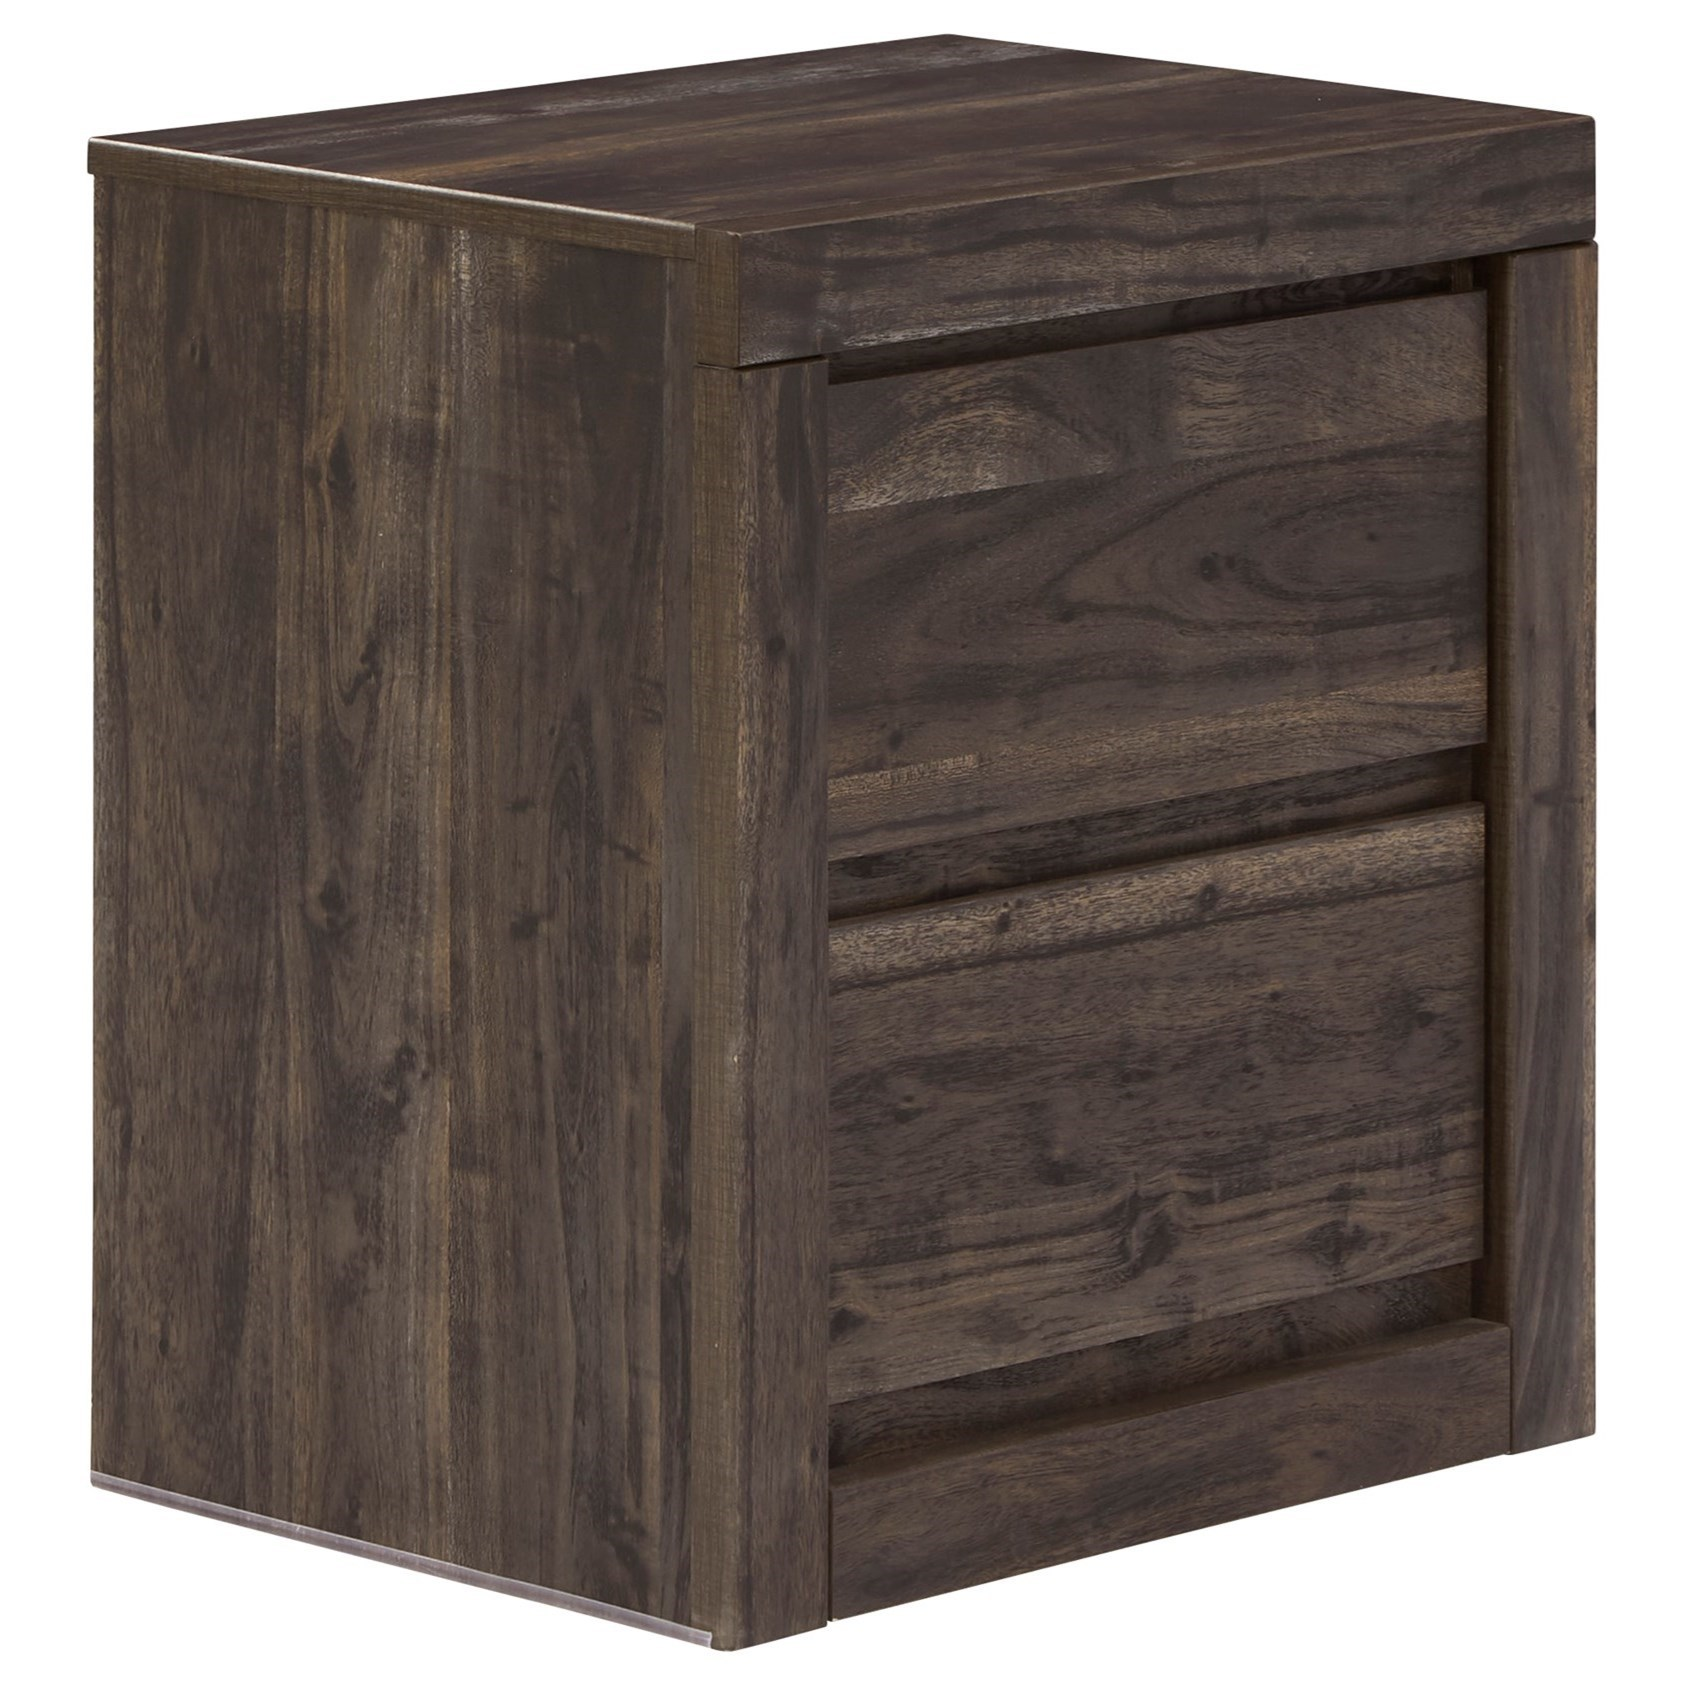 Vay Bay 2-Drawer Nightstand by Benchcraft at Value City Furniture